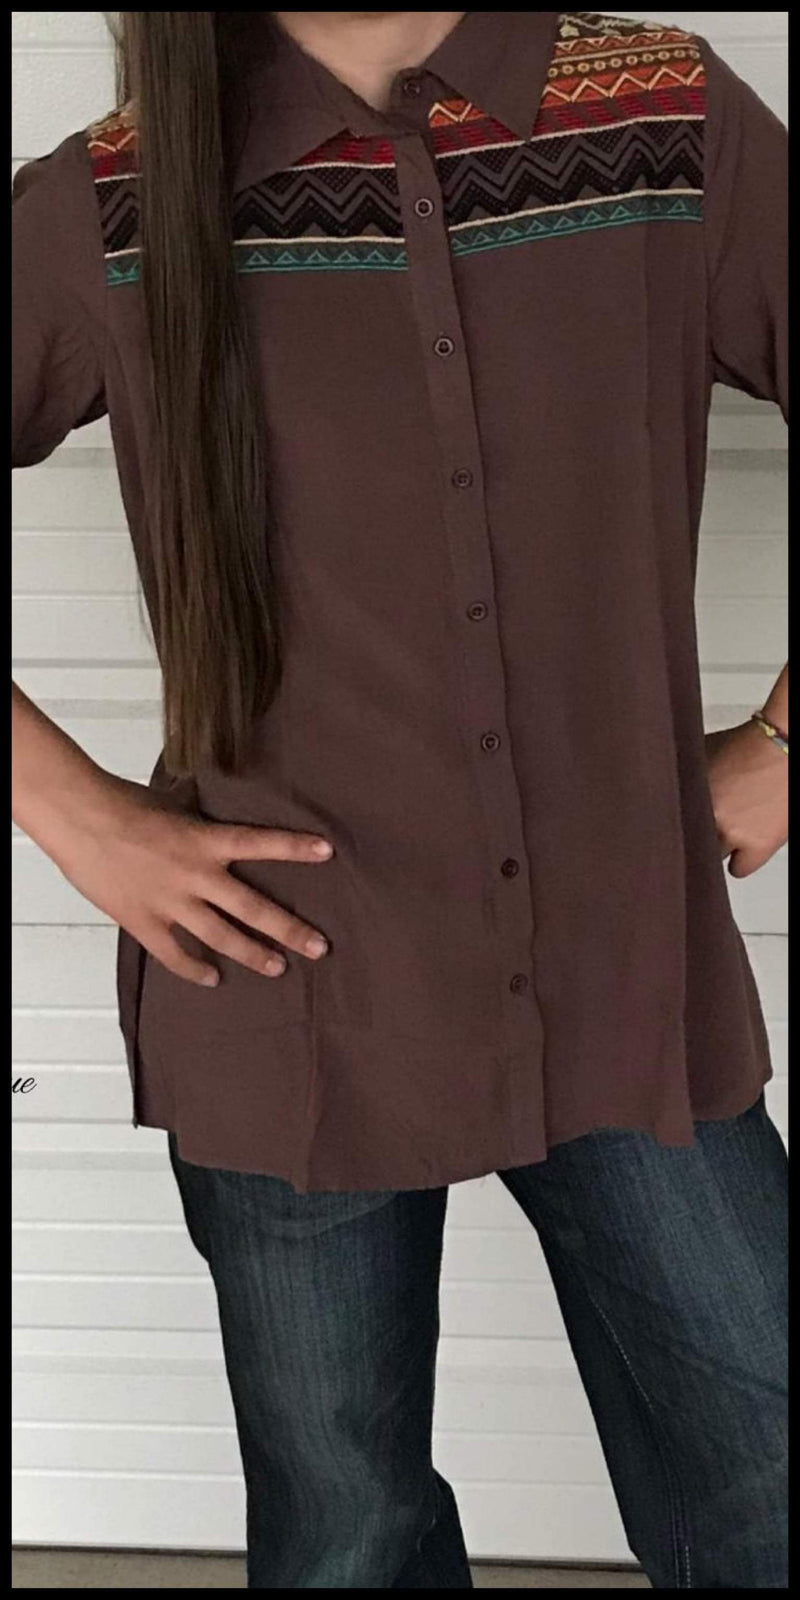 Randall Embroidered Mocha Top - Also in Plus Size